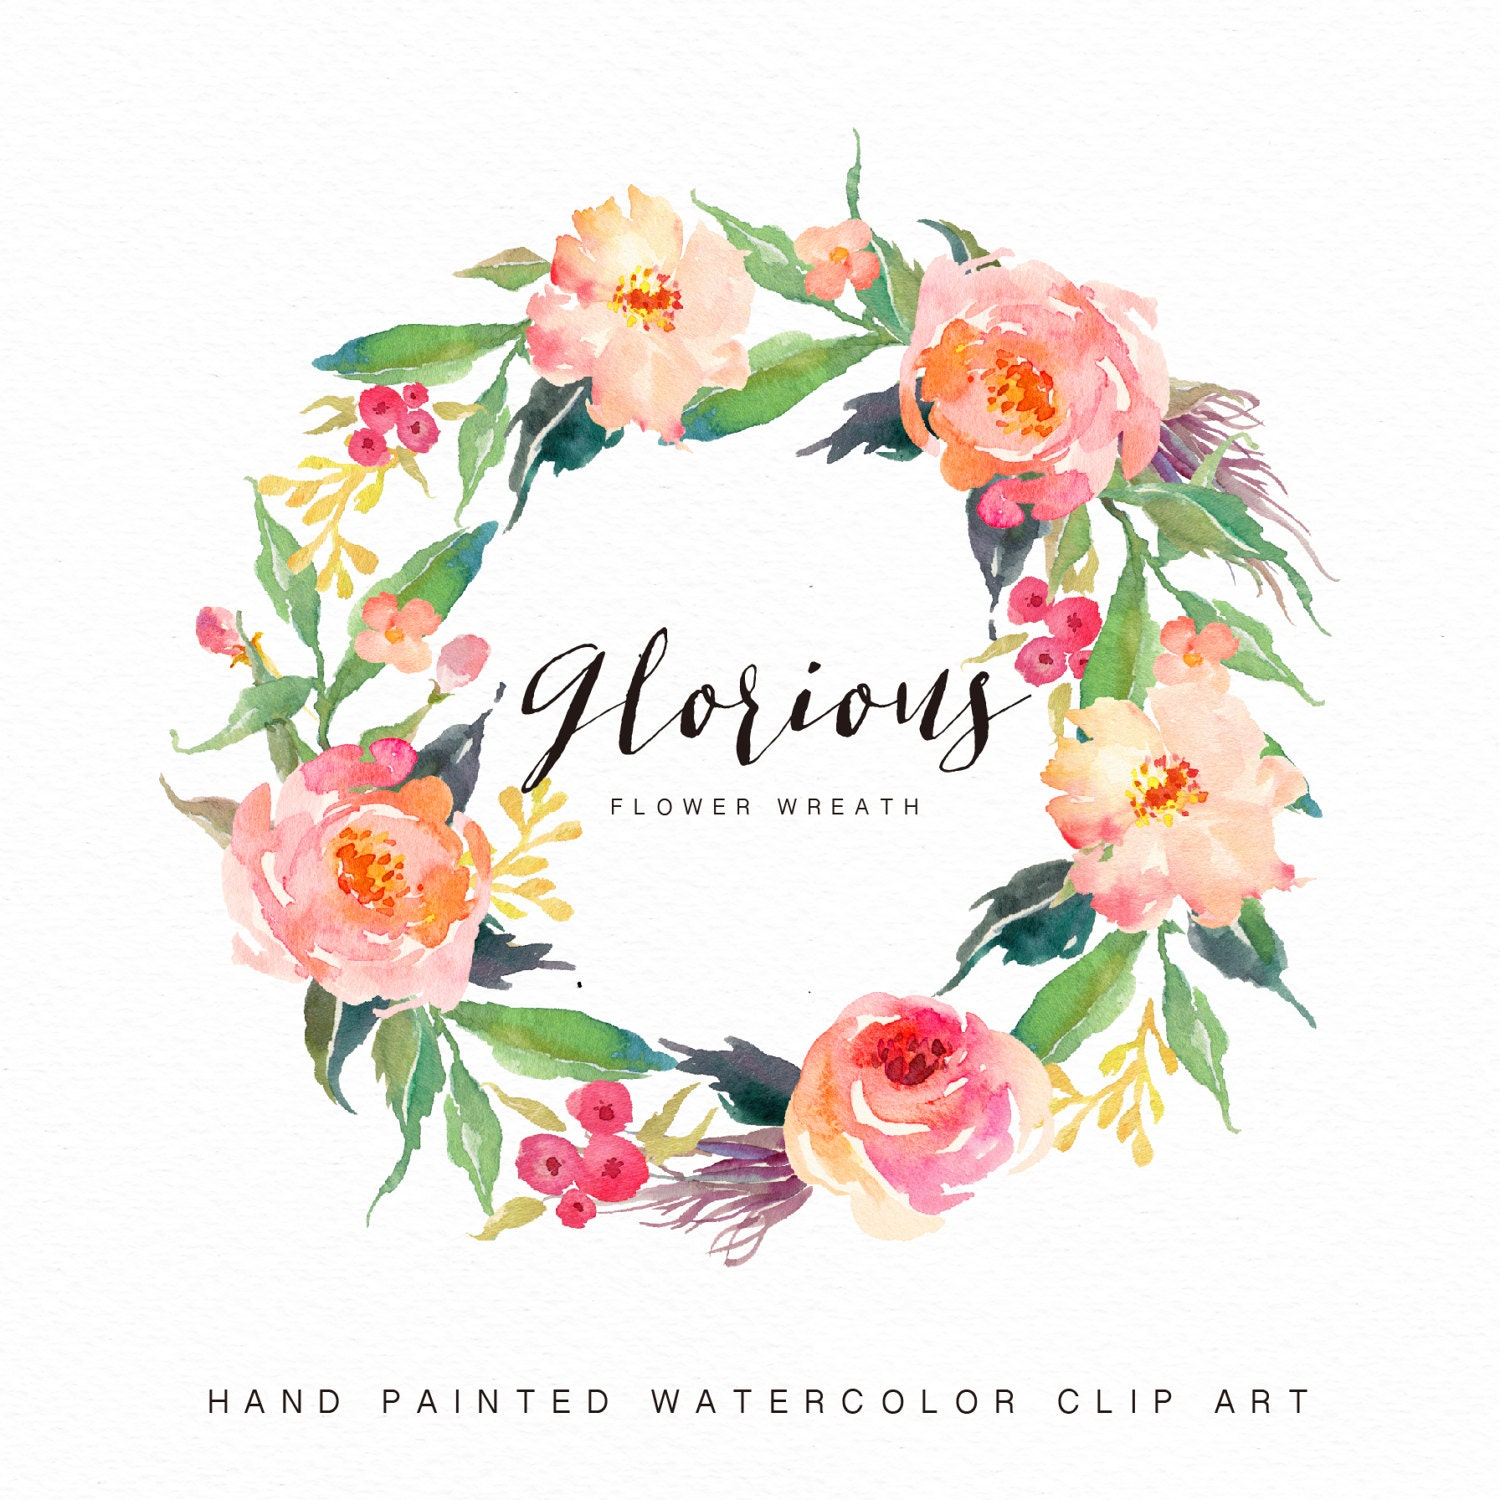 Watercolor Flower Wreath-glorious//Individual PNG Files/Hand